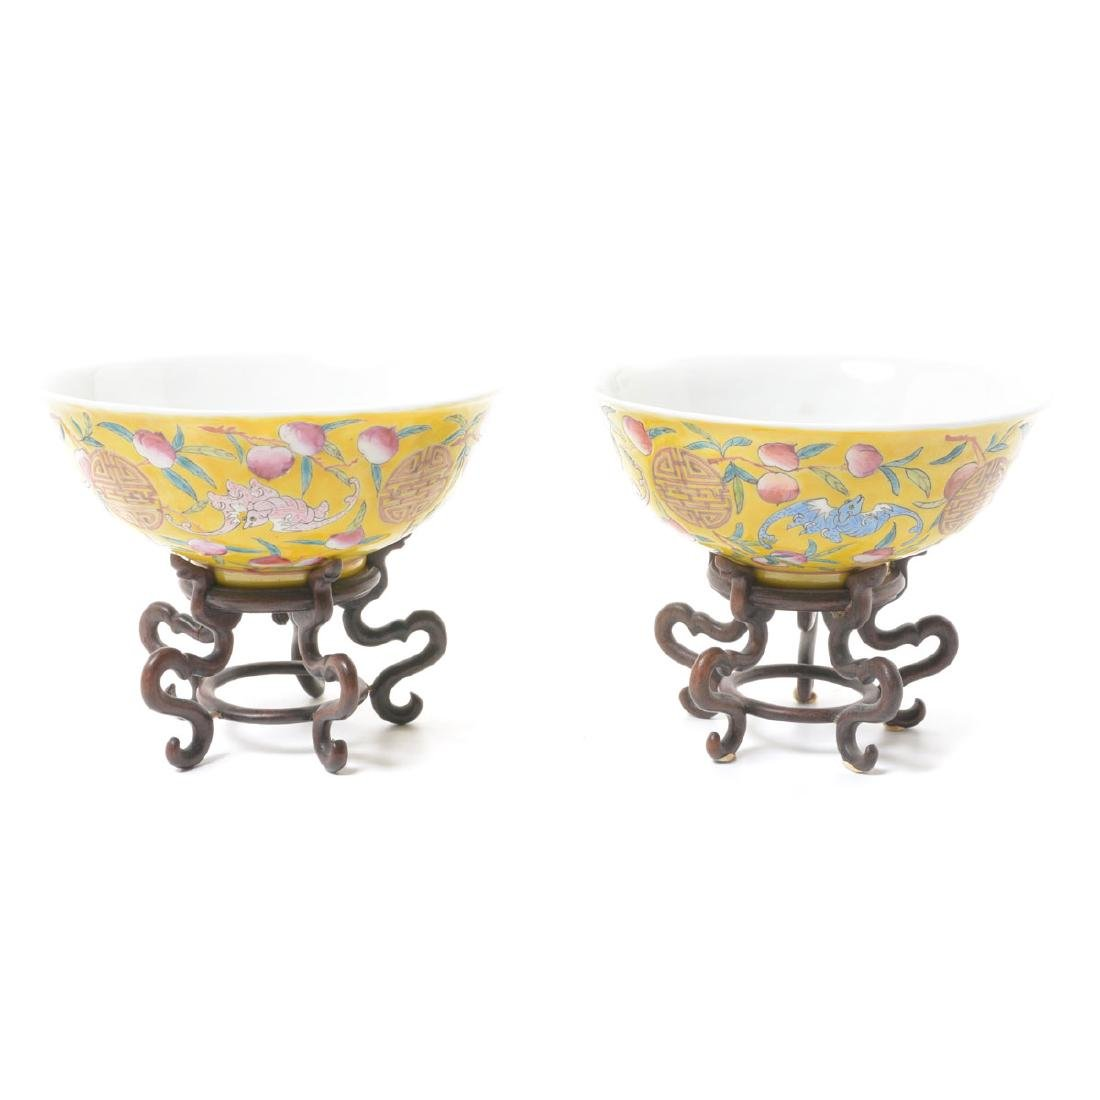 Pair of Famille Rose Yellow Ground Bowls, Early 20th C